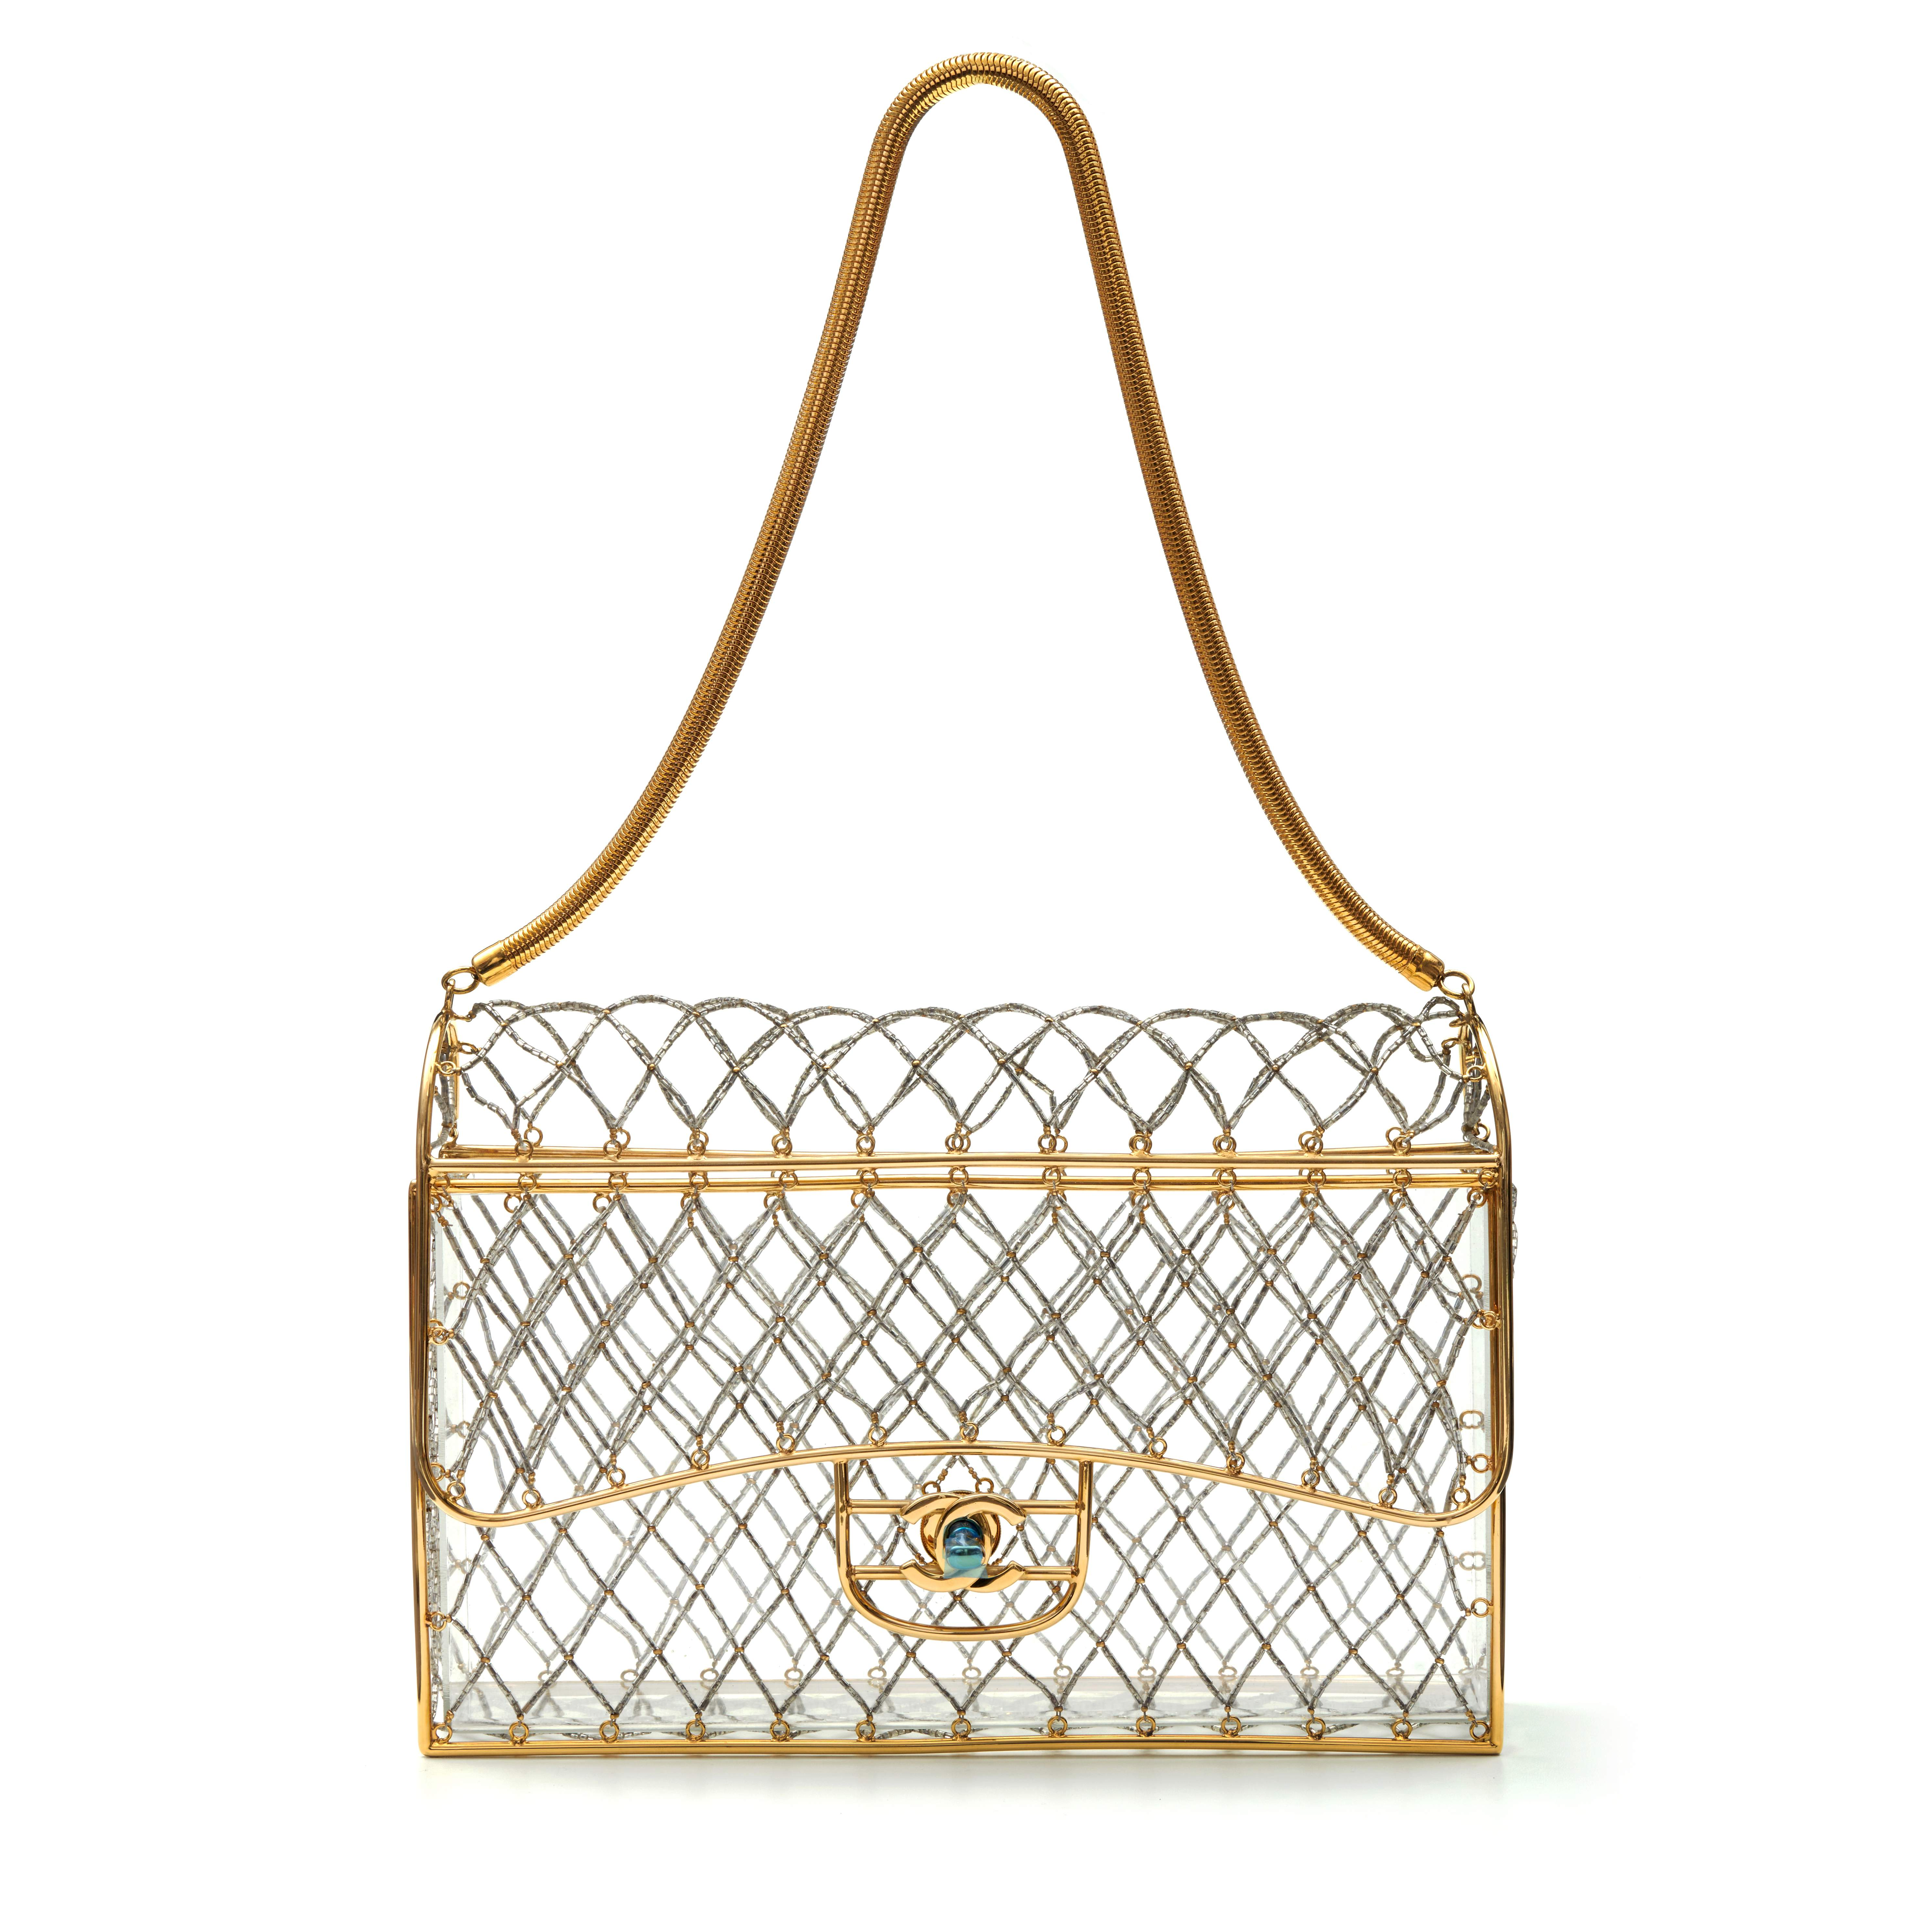 View full screen - View 1 of Lot 359. Clear Cage Bag in Lucite with Beading, Gold Tone Frame and Chain Strap, circa 1990s.